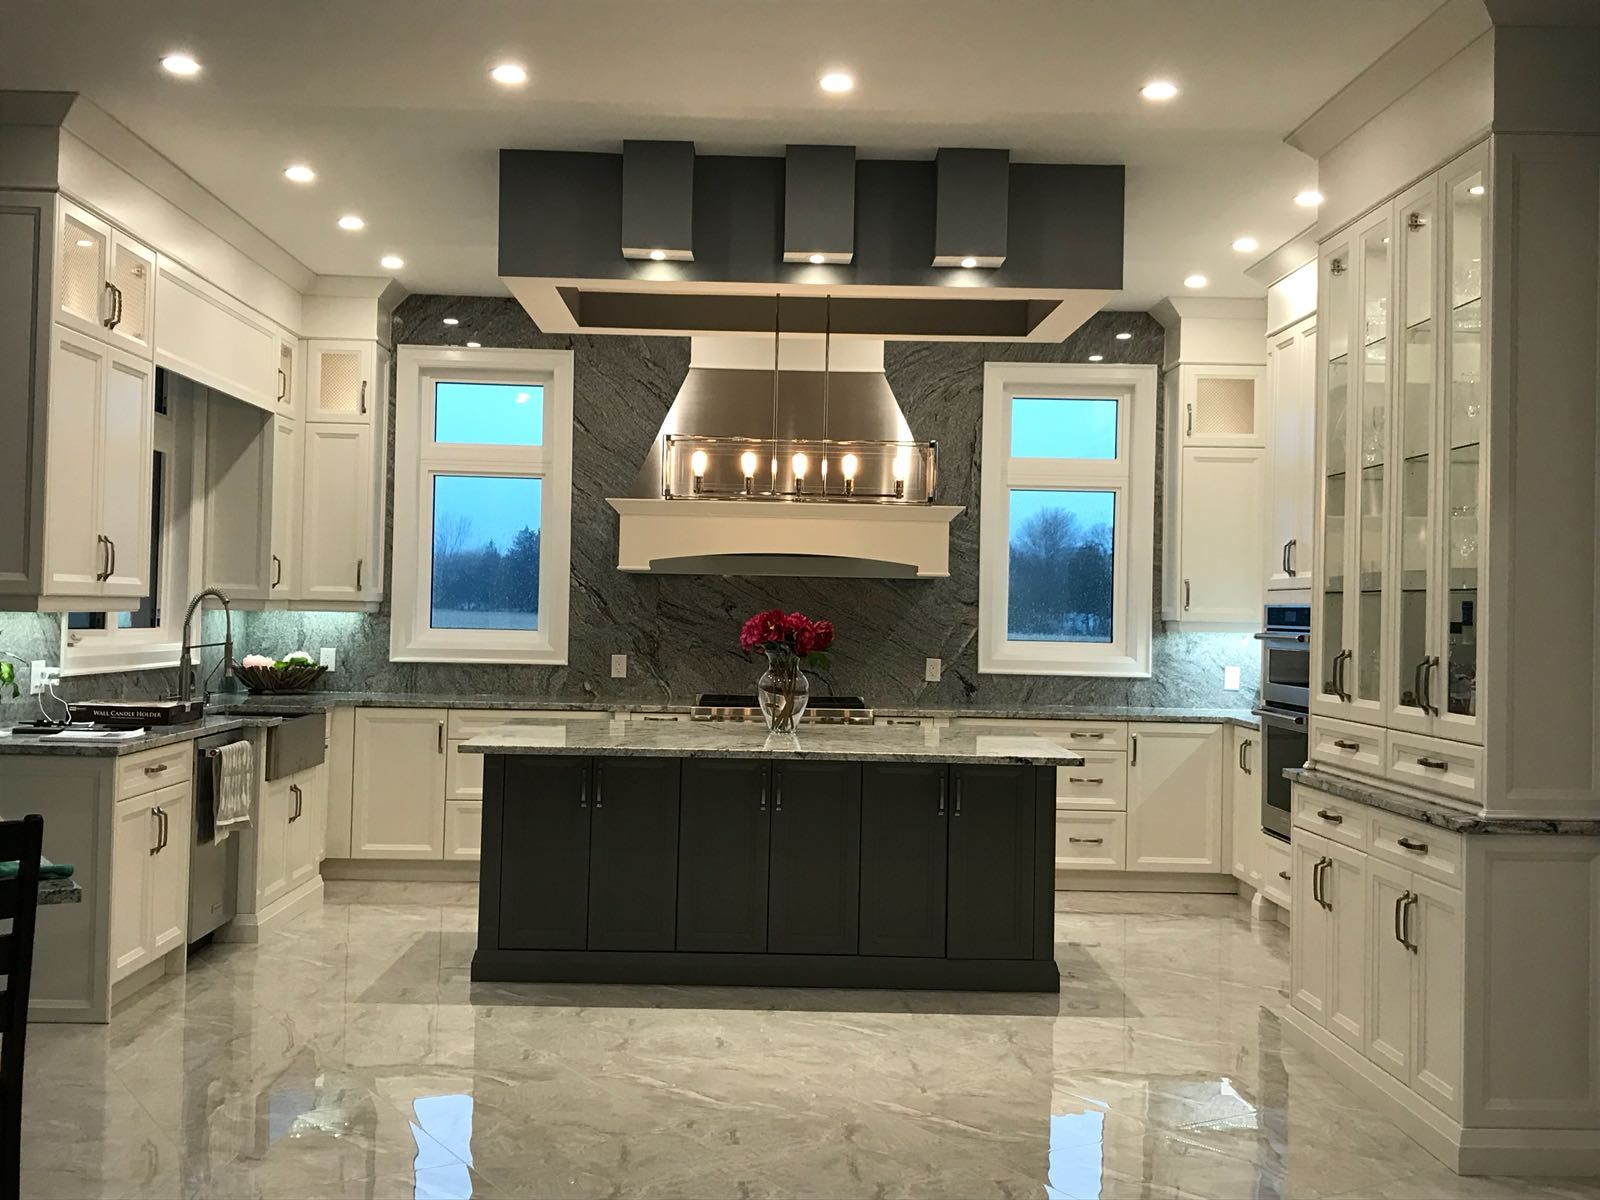 Fully Renovated Kitchen With All The Modern Amenities Proud Of A Job Well Done Kitchen Kitch Traditional Kitchen Cabinets Kitchen Design Kitchen Renovation